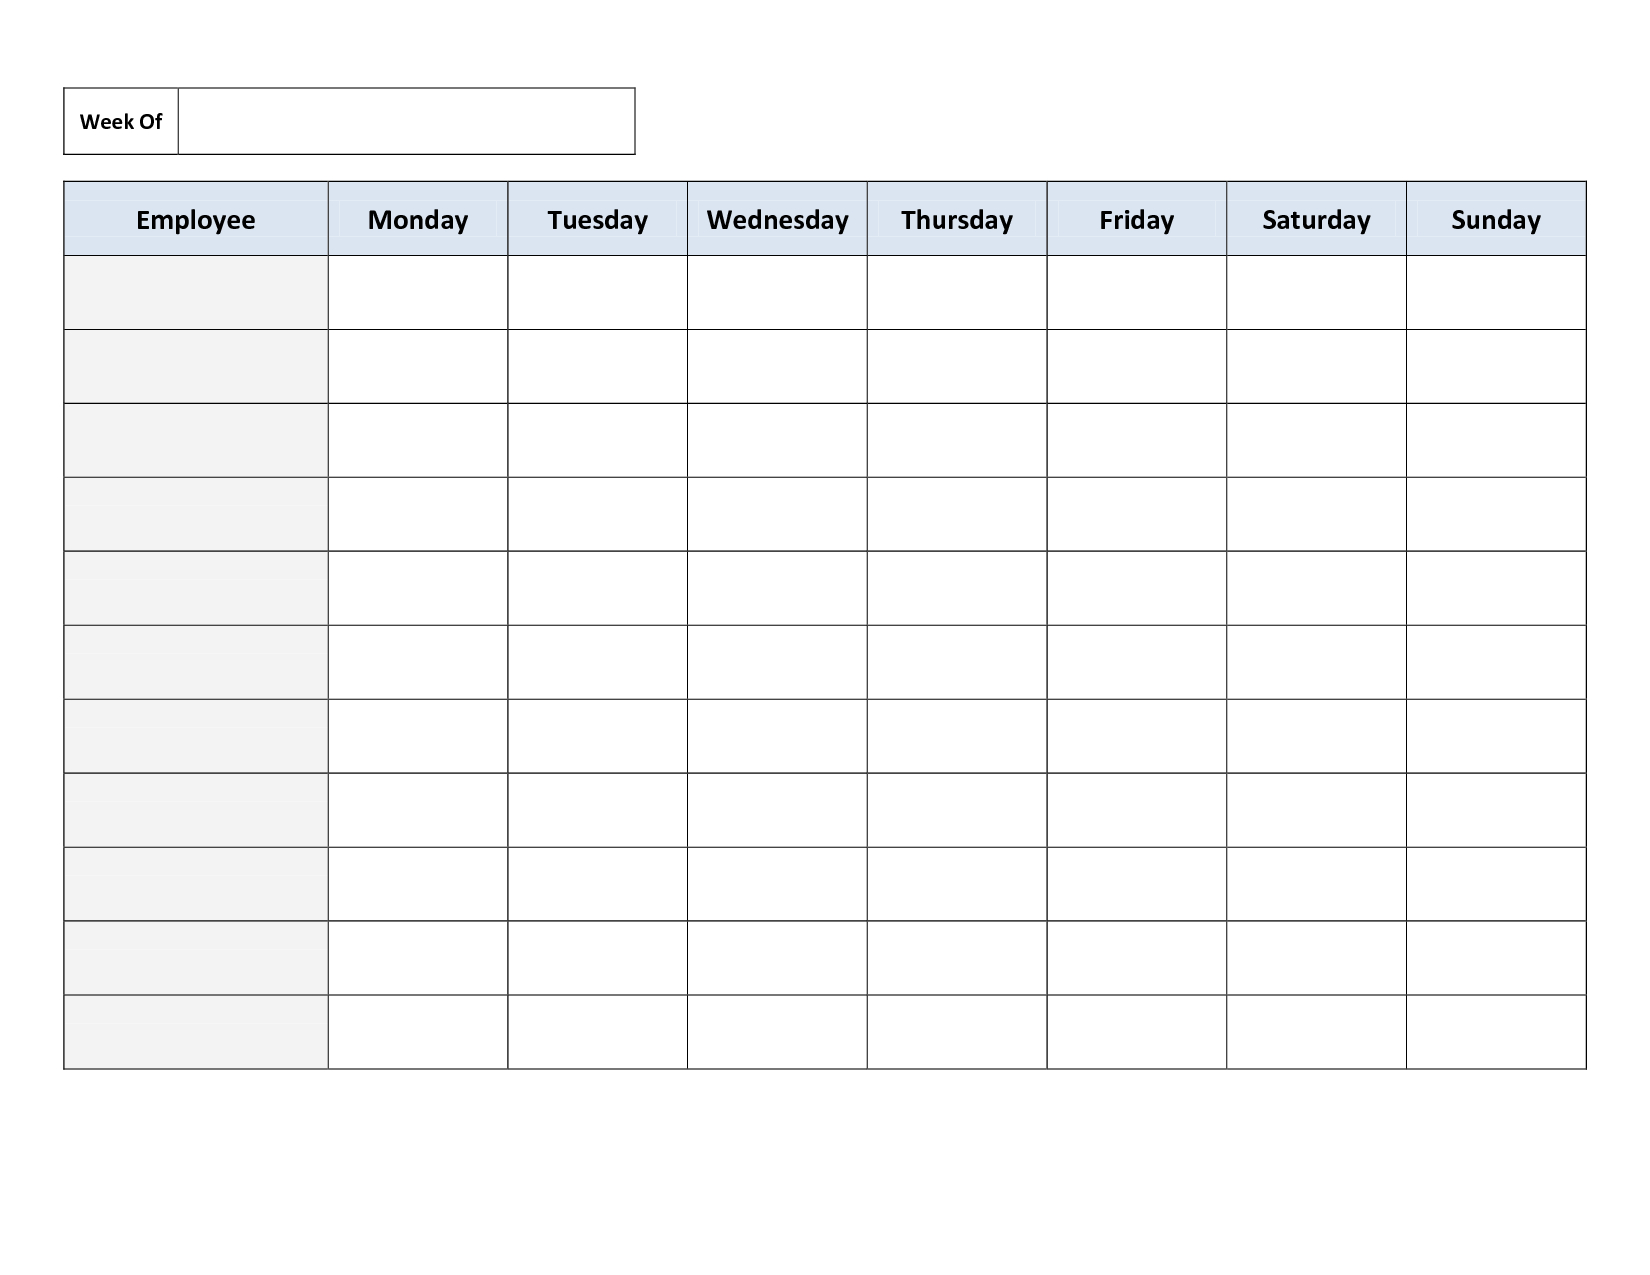 Employee Work Schedule Template - Free Templates | Daily